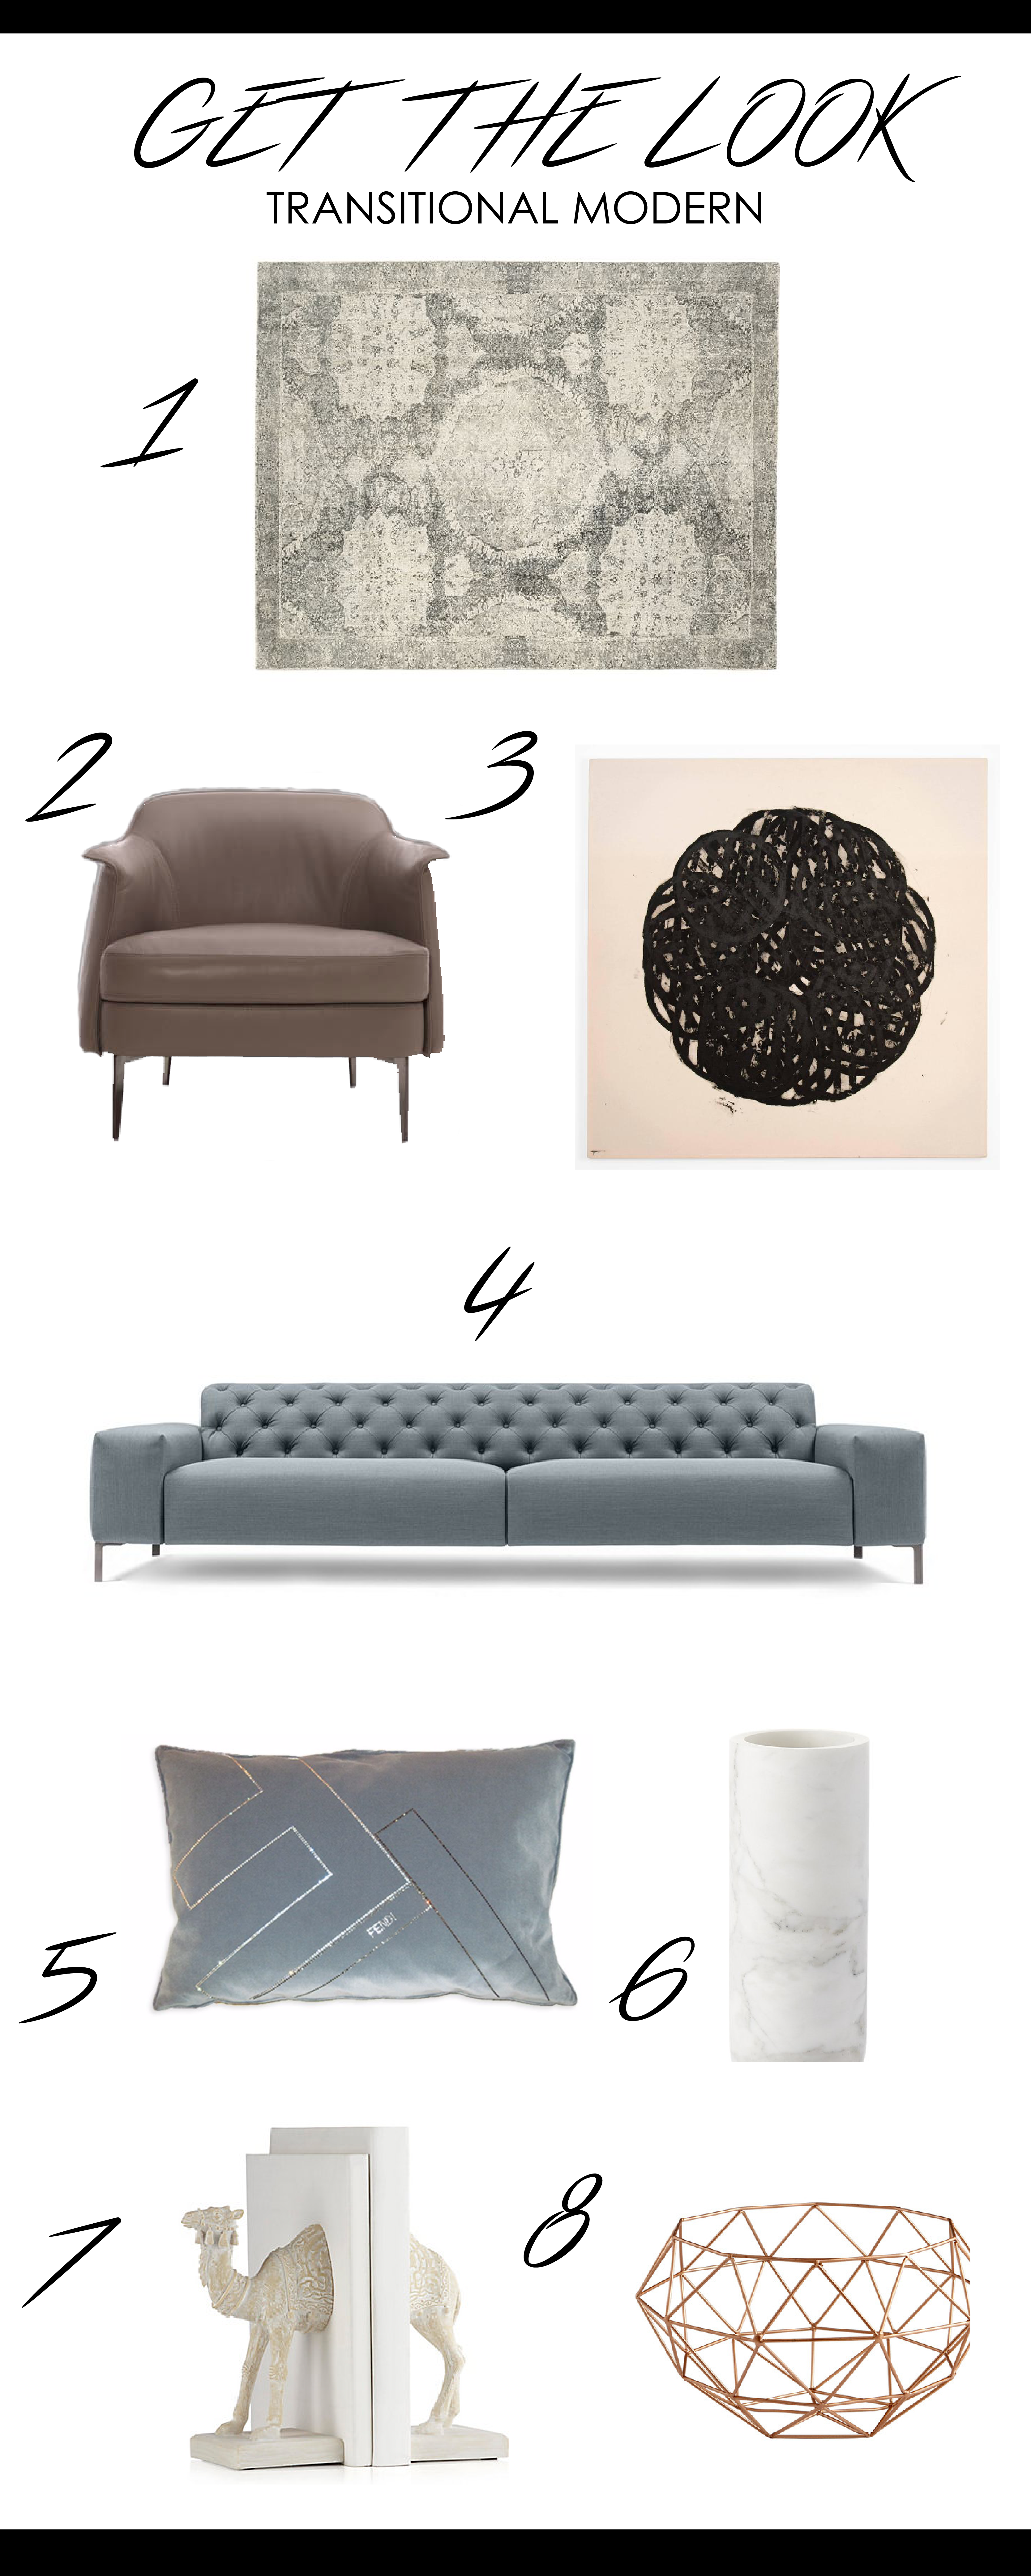 Get The Look- Transitional Modern